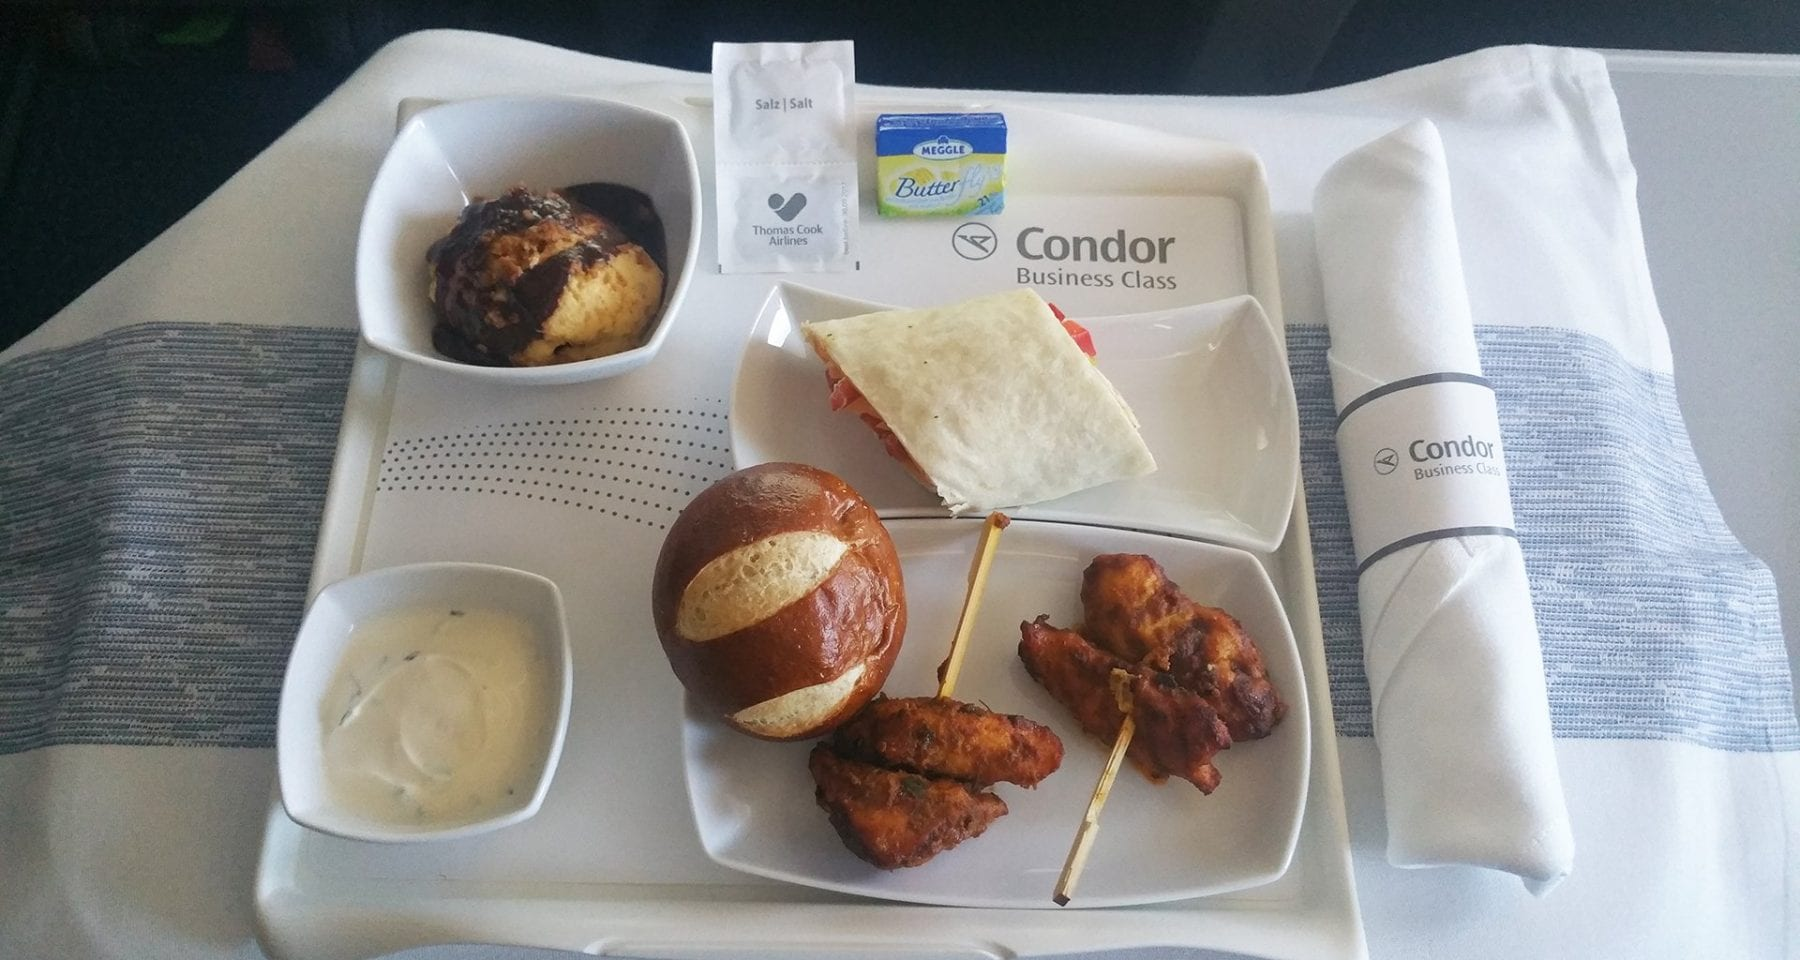 condor airlines business class meal second service